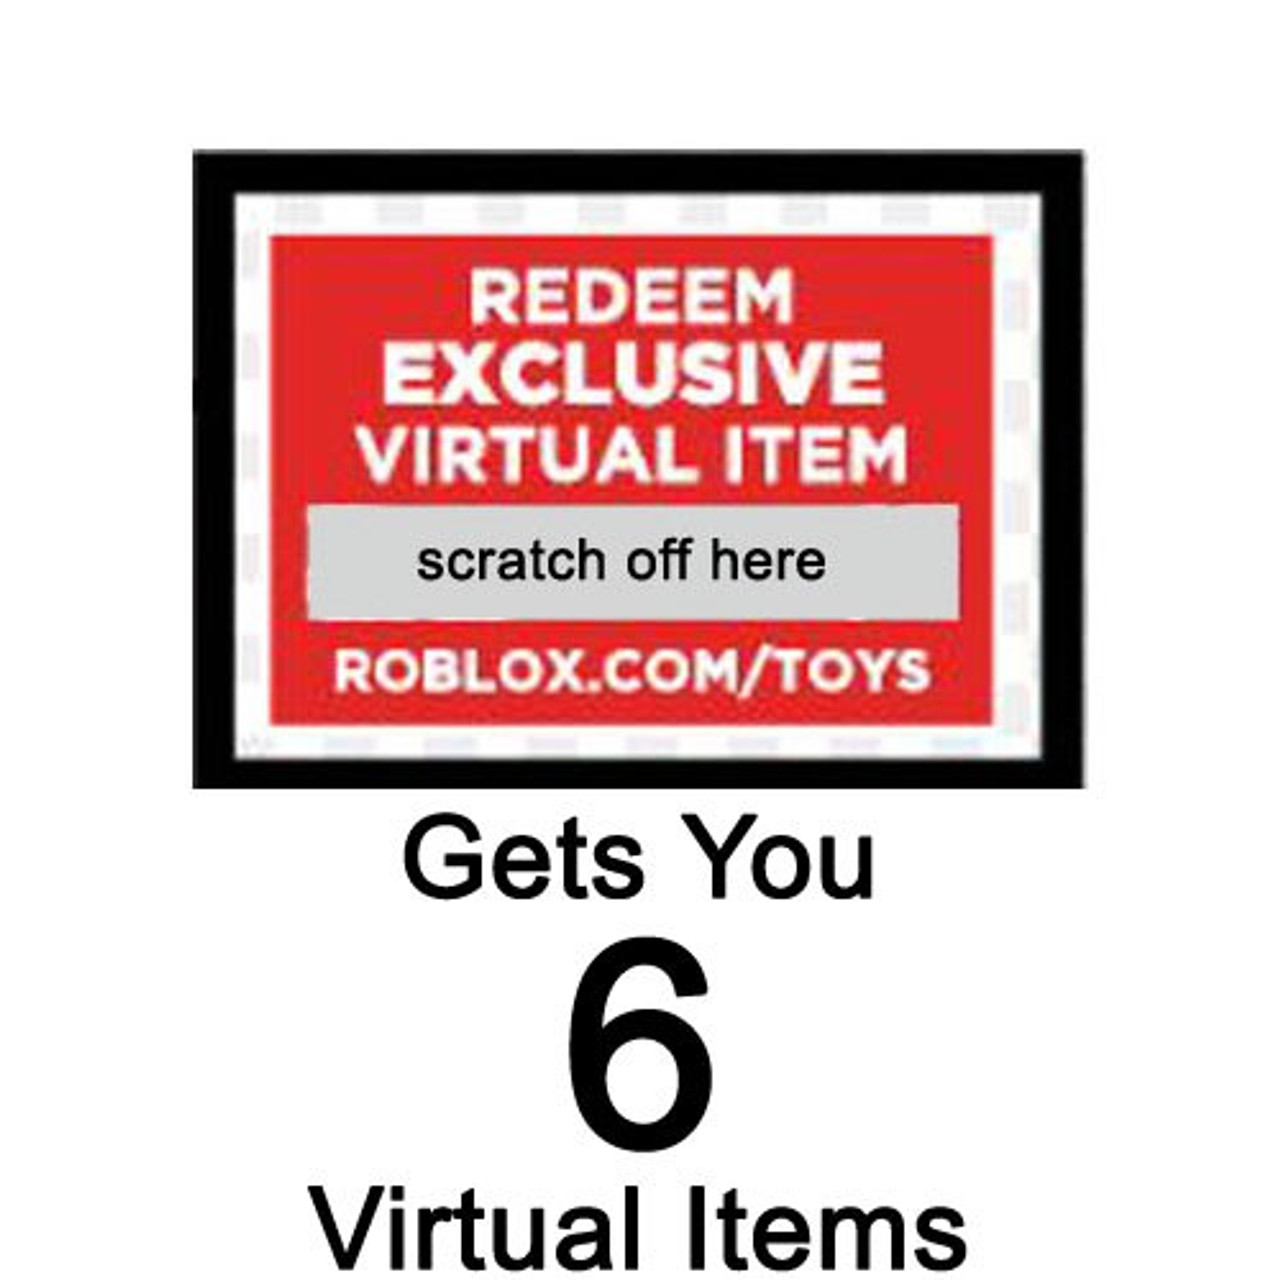 NEW ROBLOX TOYS + CODES!!! - Video craftswatch com